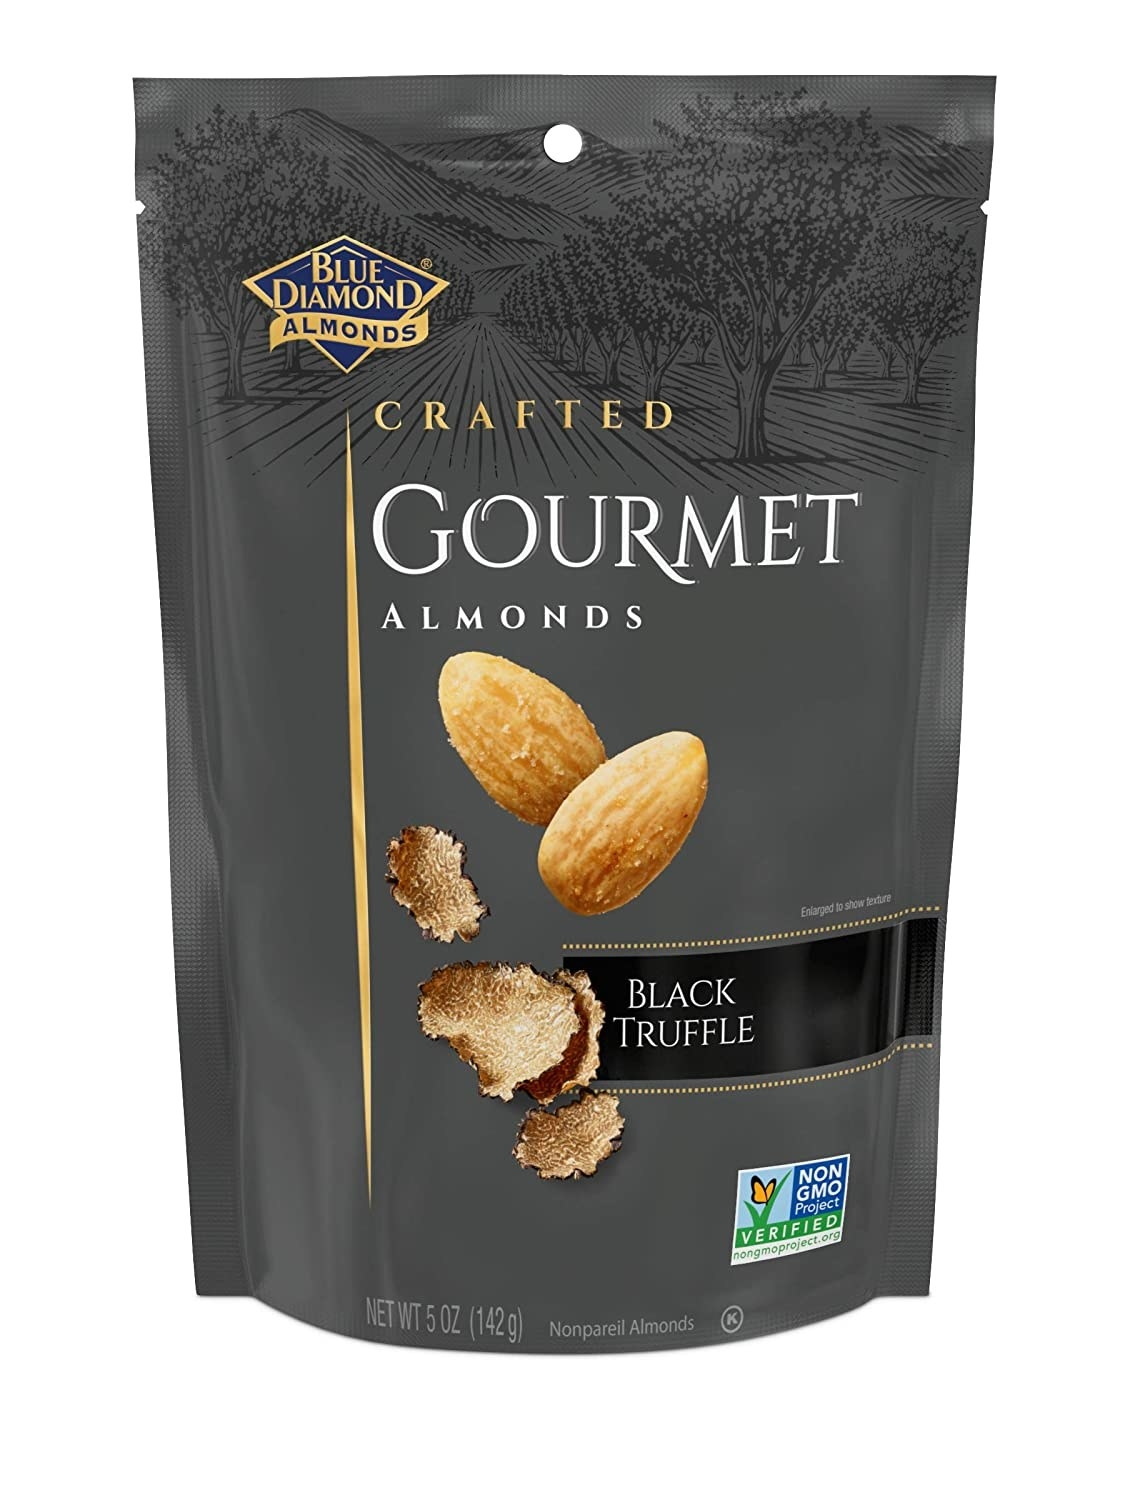 the bag of truffle almonds